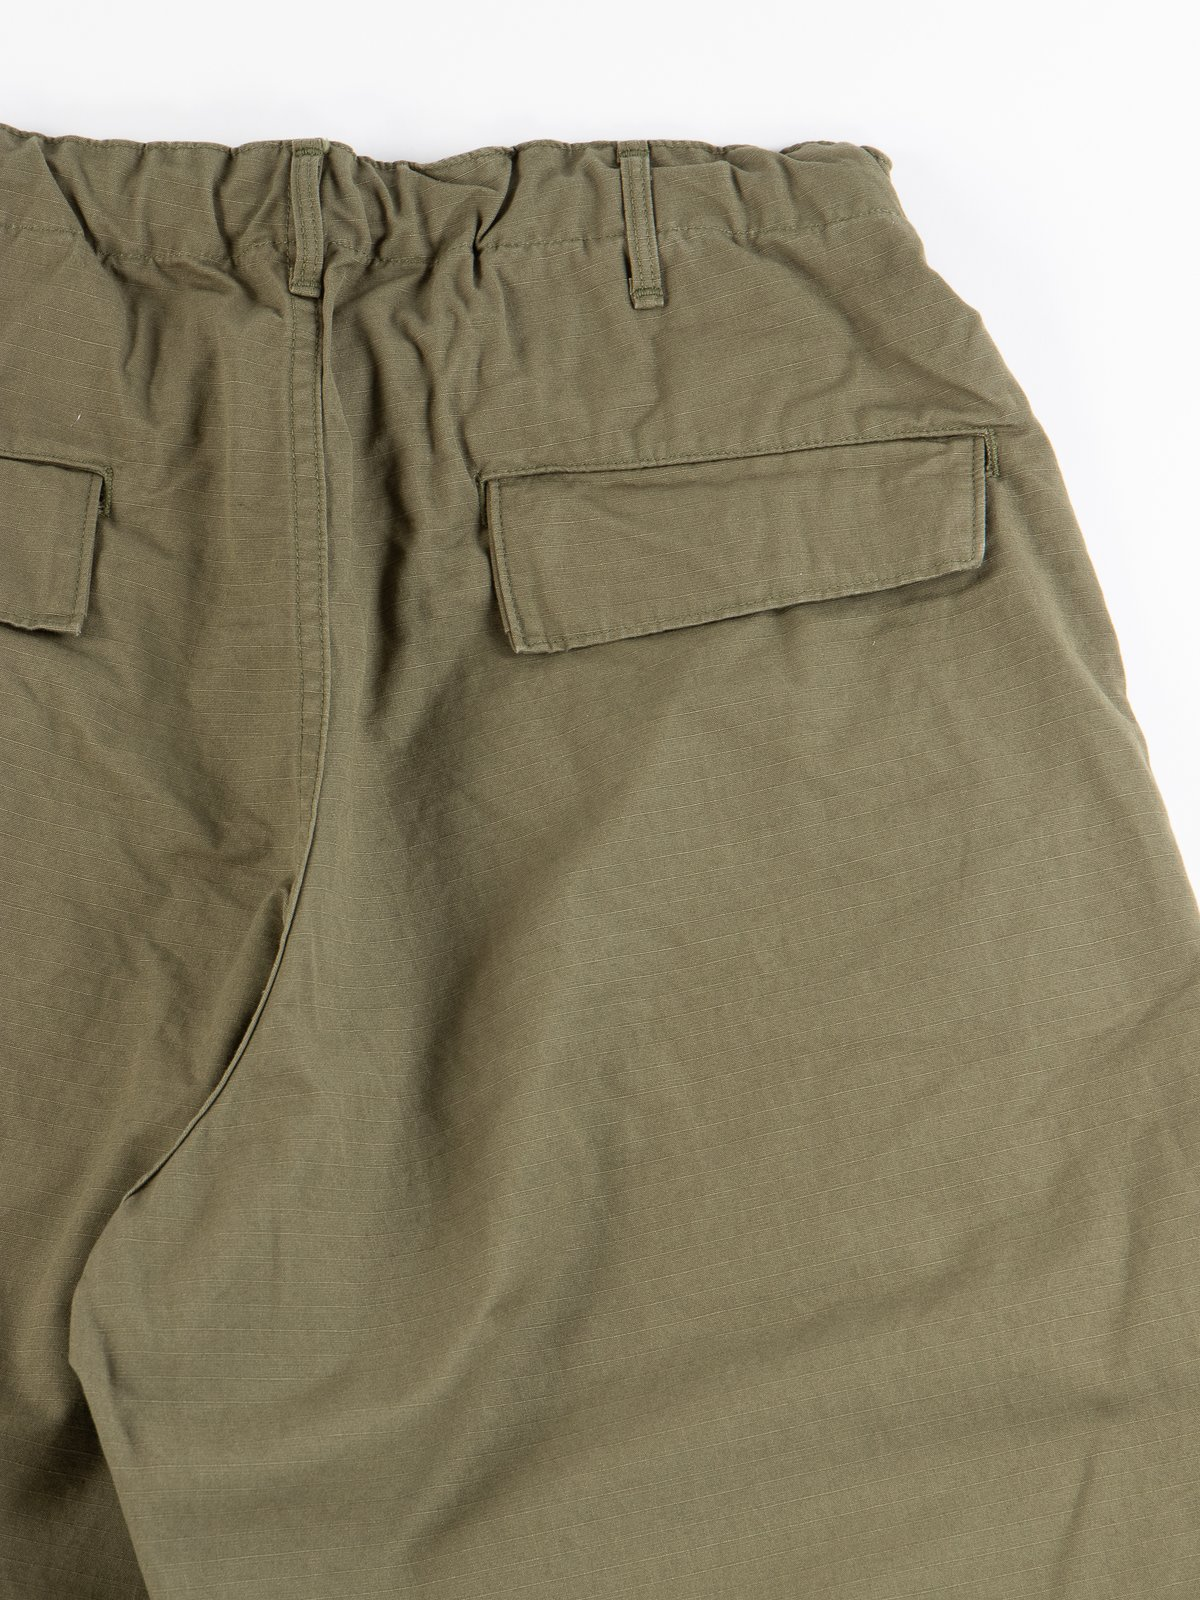 Army Green Ripstop TBB Service Pant - Image 7